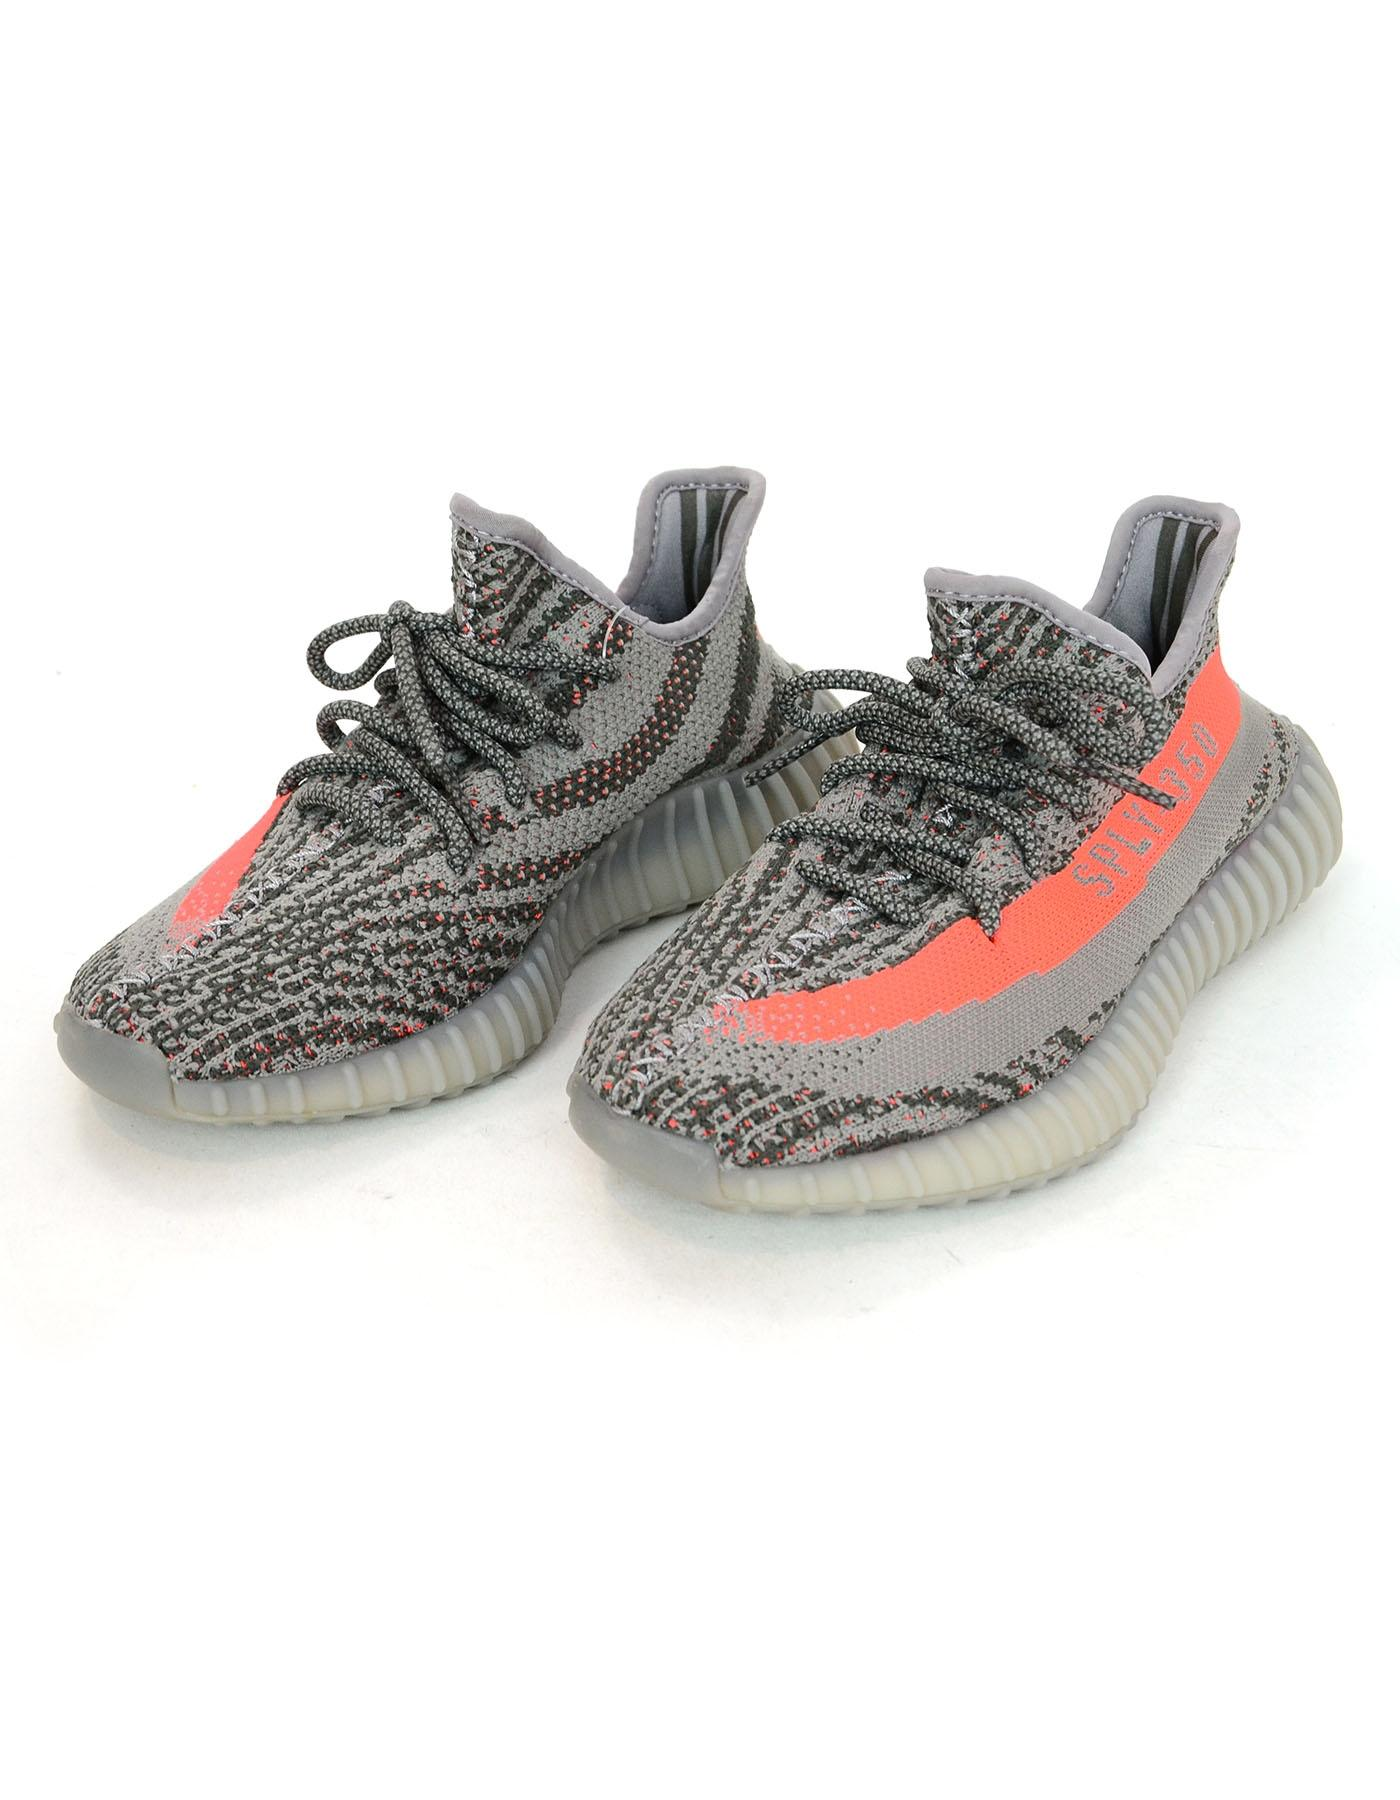 db90ccc864f ... aliexpress adidas x yeezy grey kanye west boost 350 v2 beluga sneakers  38 2 3 de822